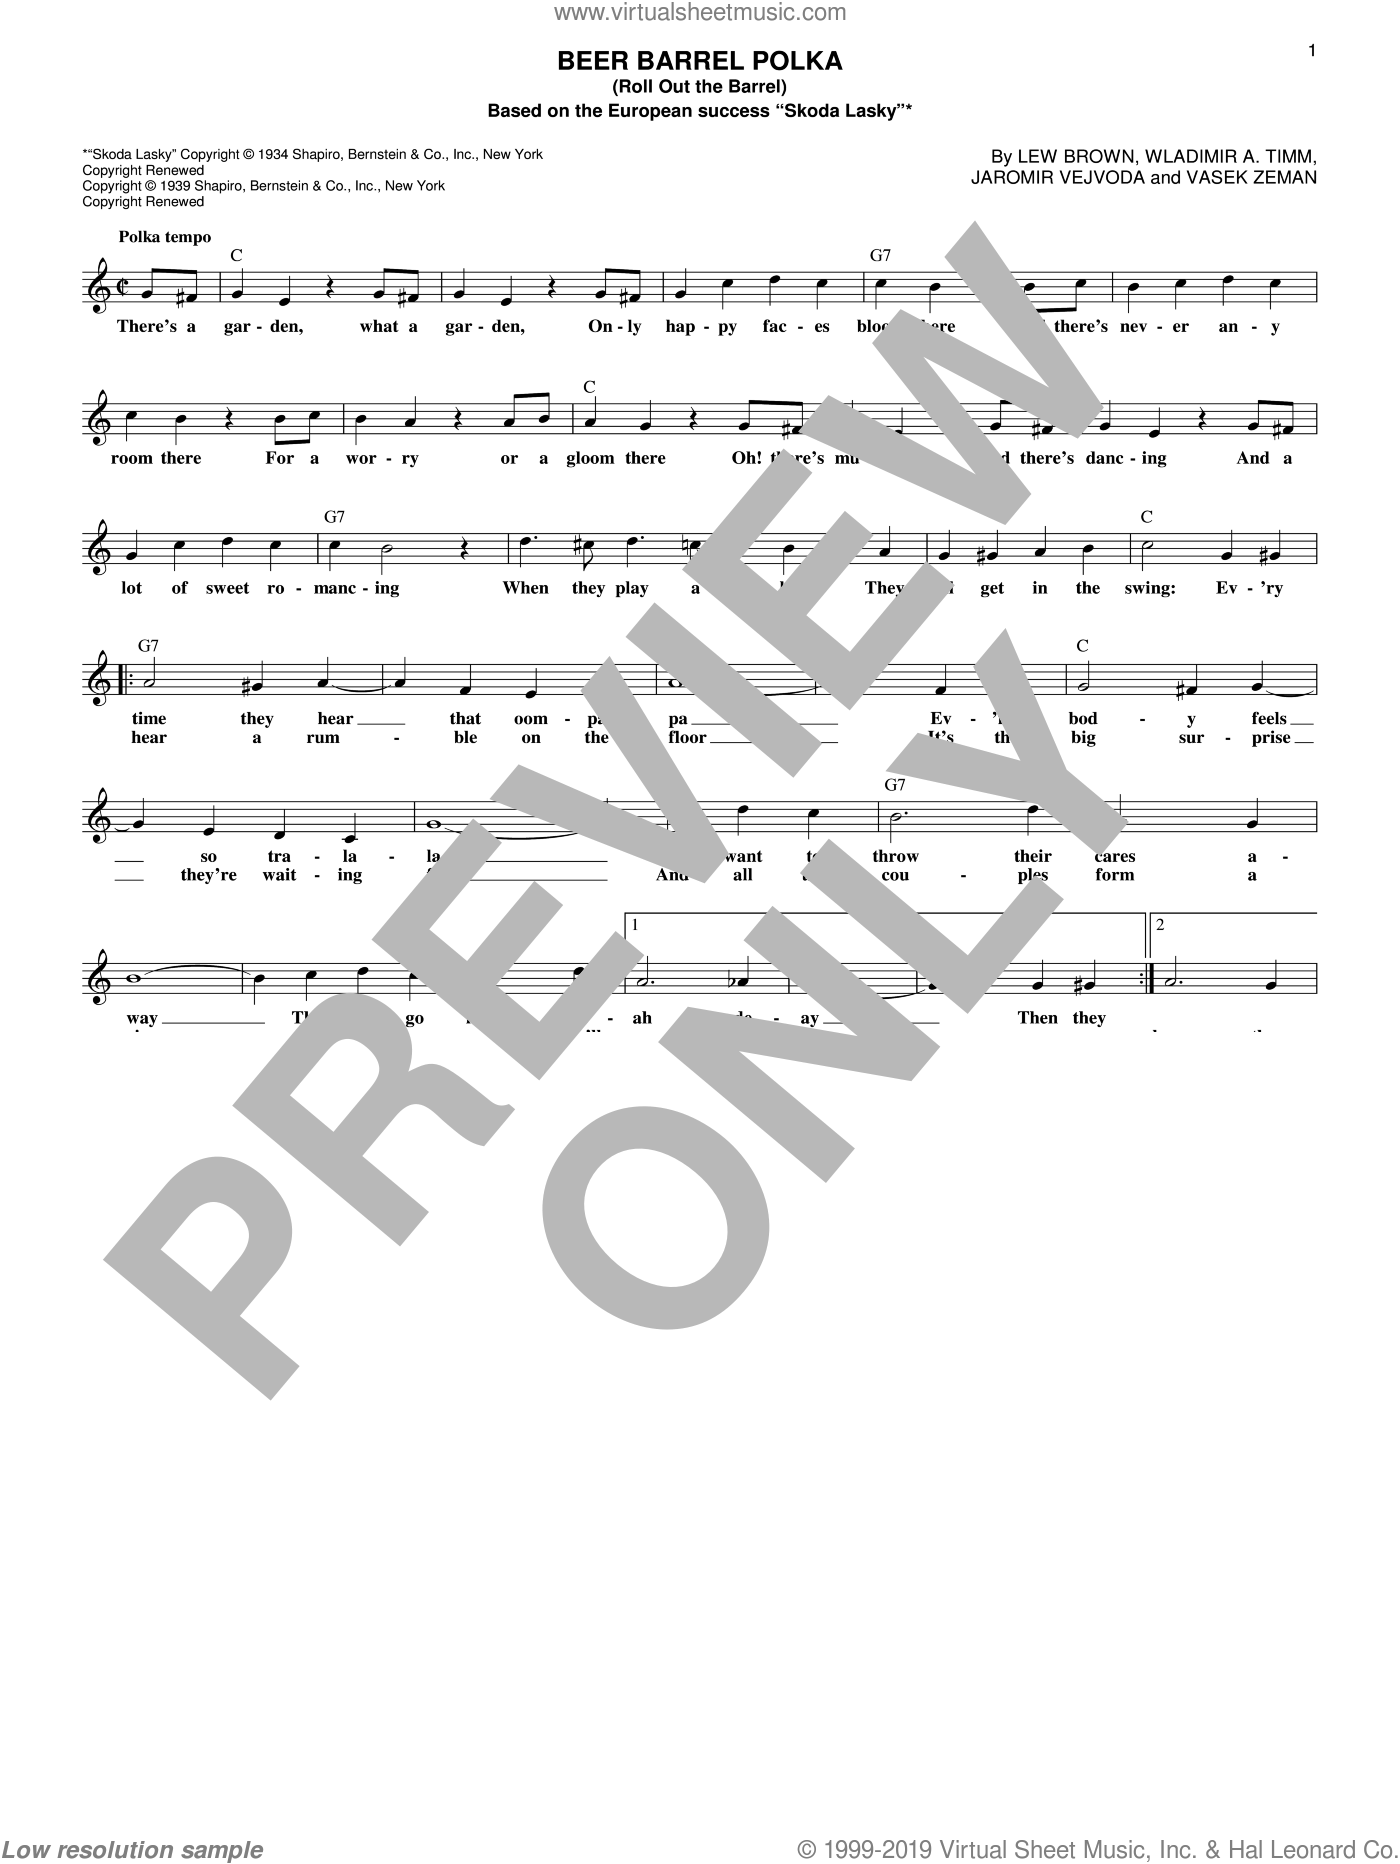 Beer Barrel Polka (Roll Out The Barrel) sheet music for voice and other instruments (fake book) by Bobby Vinton and Lew Brown, intermediate. Score Image Preview.